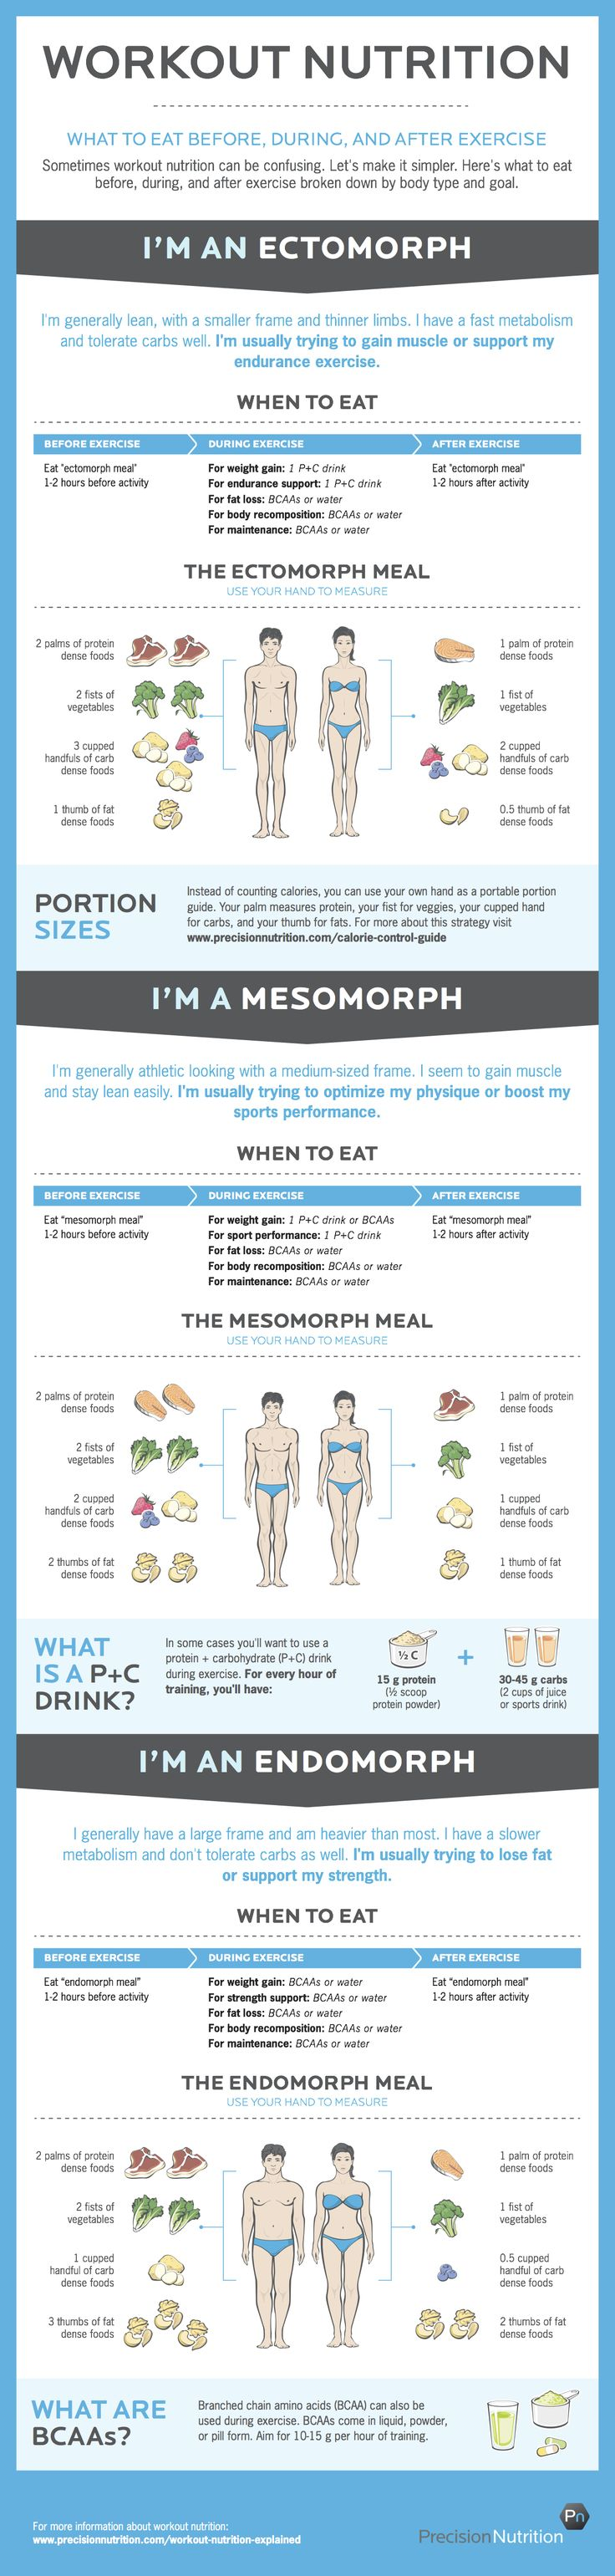 Workout nutrition for fitness, wellness, strength. Personal training clients and strength training people all over the world could use this. Minneapolis yogis, fitness enthusiasts and people in the world check out precision nutrition for the best information like this info graphic.